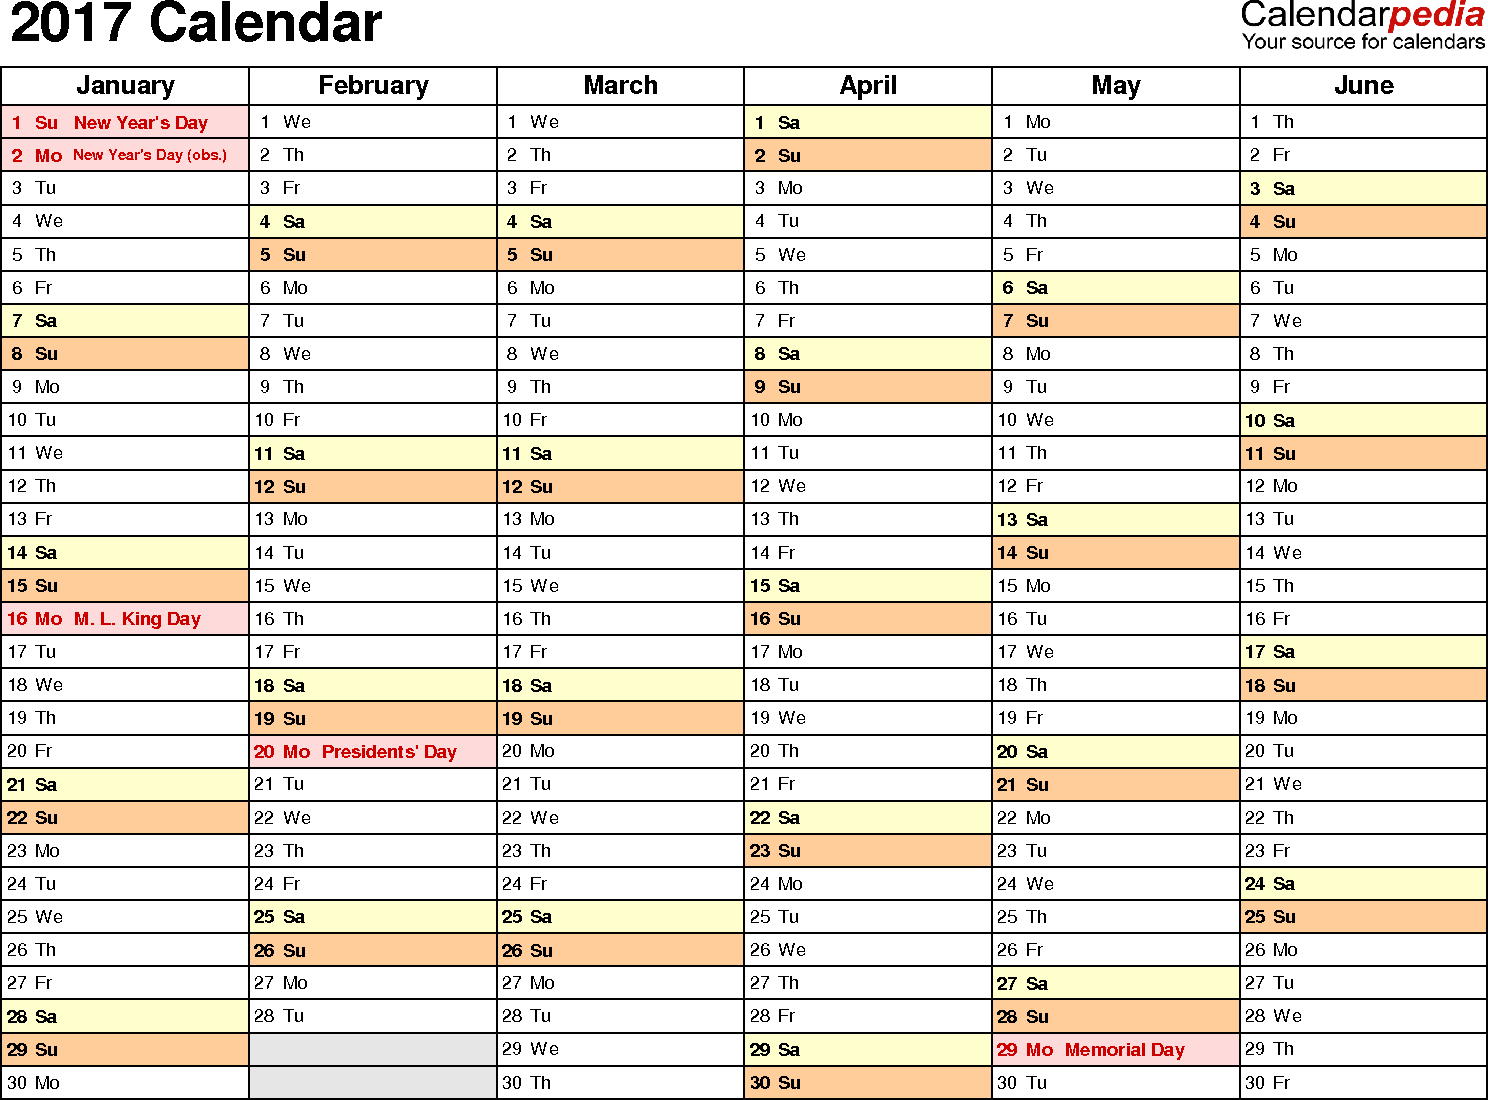 Ediblewildsus  Pleasant  Calendar  Download  Free Printable Excel Templates Xls With Exquisite Template   Calendar For Excel Months Horizontally  Pages Landscape Orientation With Adorable Free Excel Expense Report Template Also Advanced Excel Courses Online Free In Addition Excel Row Into Column And How To Build An Excel Dashboard As Well As Excel Plotting Additionally What If Excel  From Calendarpediacom With Ediblewildsus  Exquisite  Calendar  Download  Free Printable Excel Templates Xls With Adorable Template   Calendar For Excel Months Horizontally  Pages Landscape Orientation And Pleasant Free Excel Expense Report Template Also Advanced Excel Courses Online Free In Addition Excel Row Into Column From Calendarpediacom